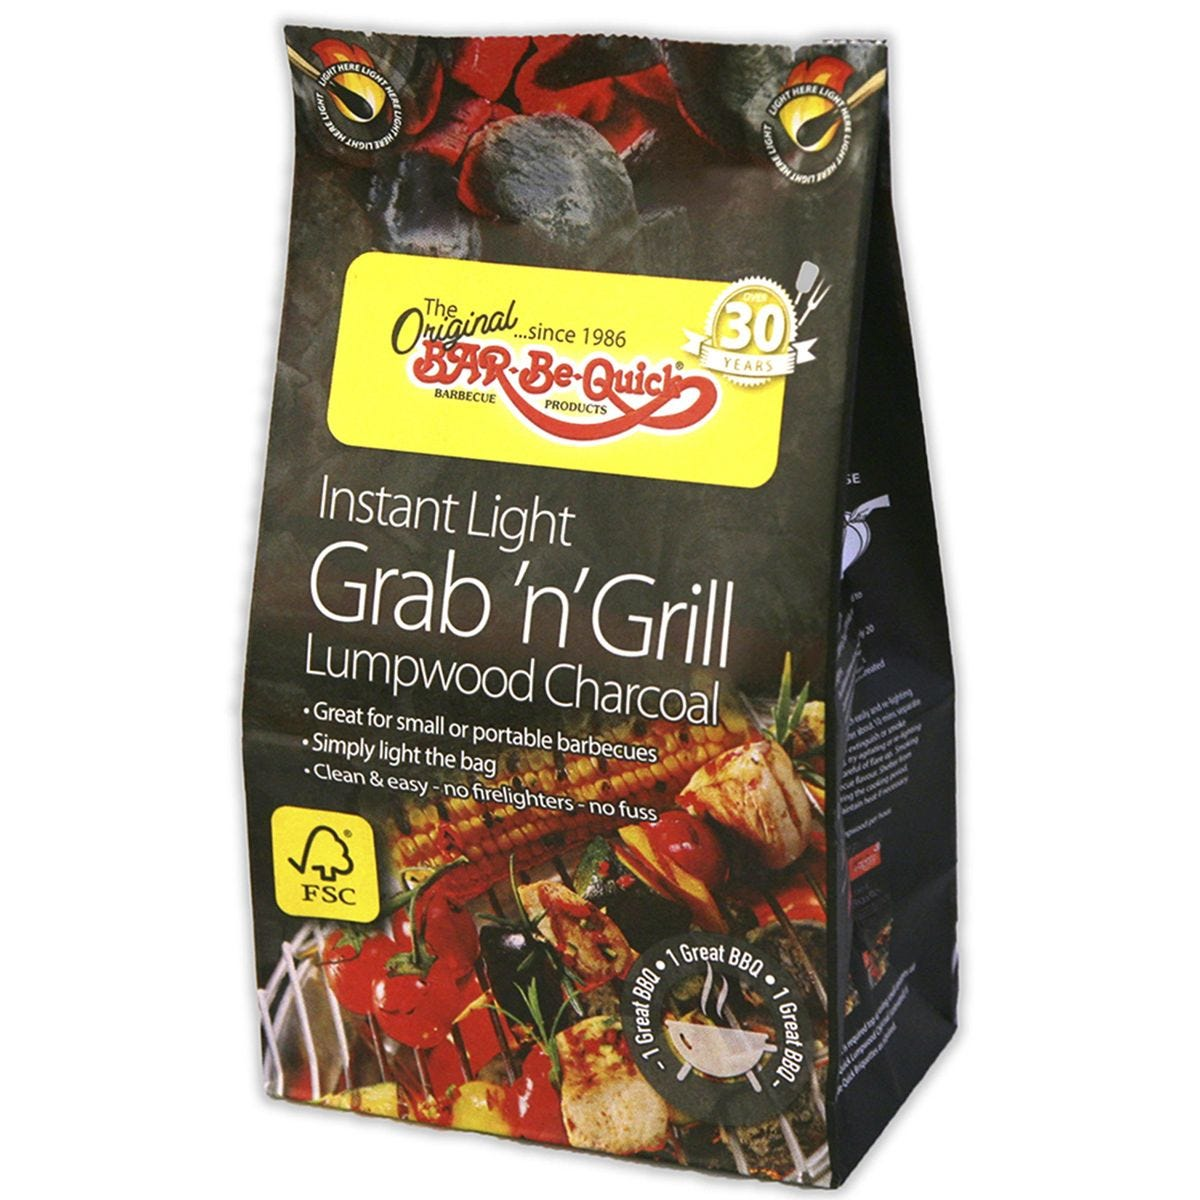 Bar-Be-Quick Instant Light Charcoal - 500g